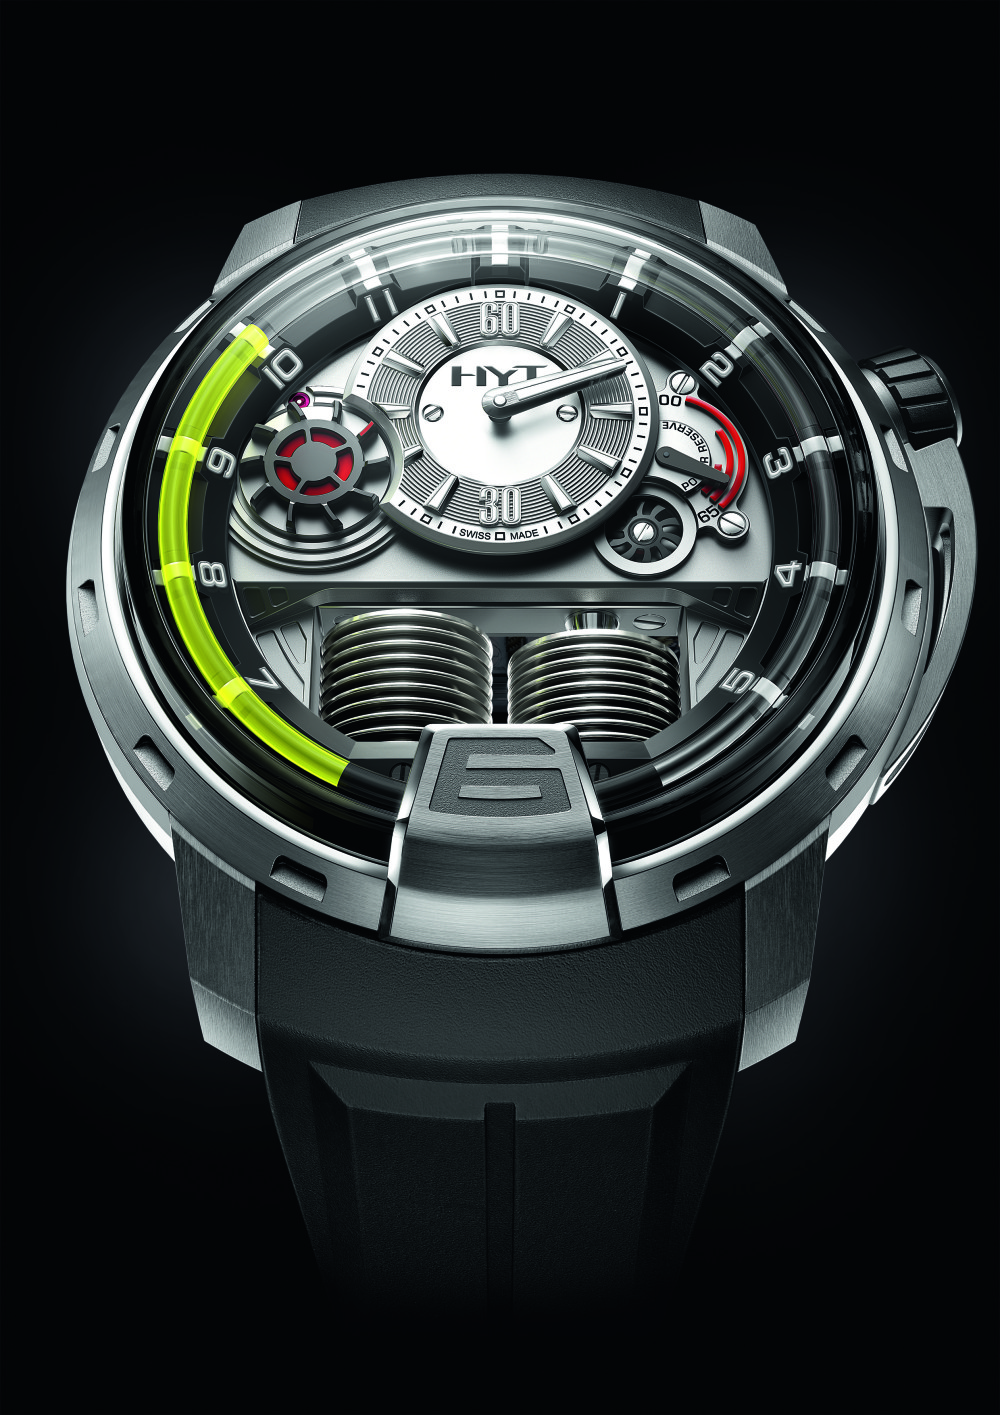 The H1 watch, which combines liquid mechanics with conventional clockwork for an innovative means of telling the time.